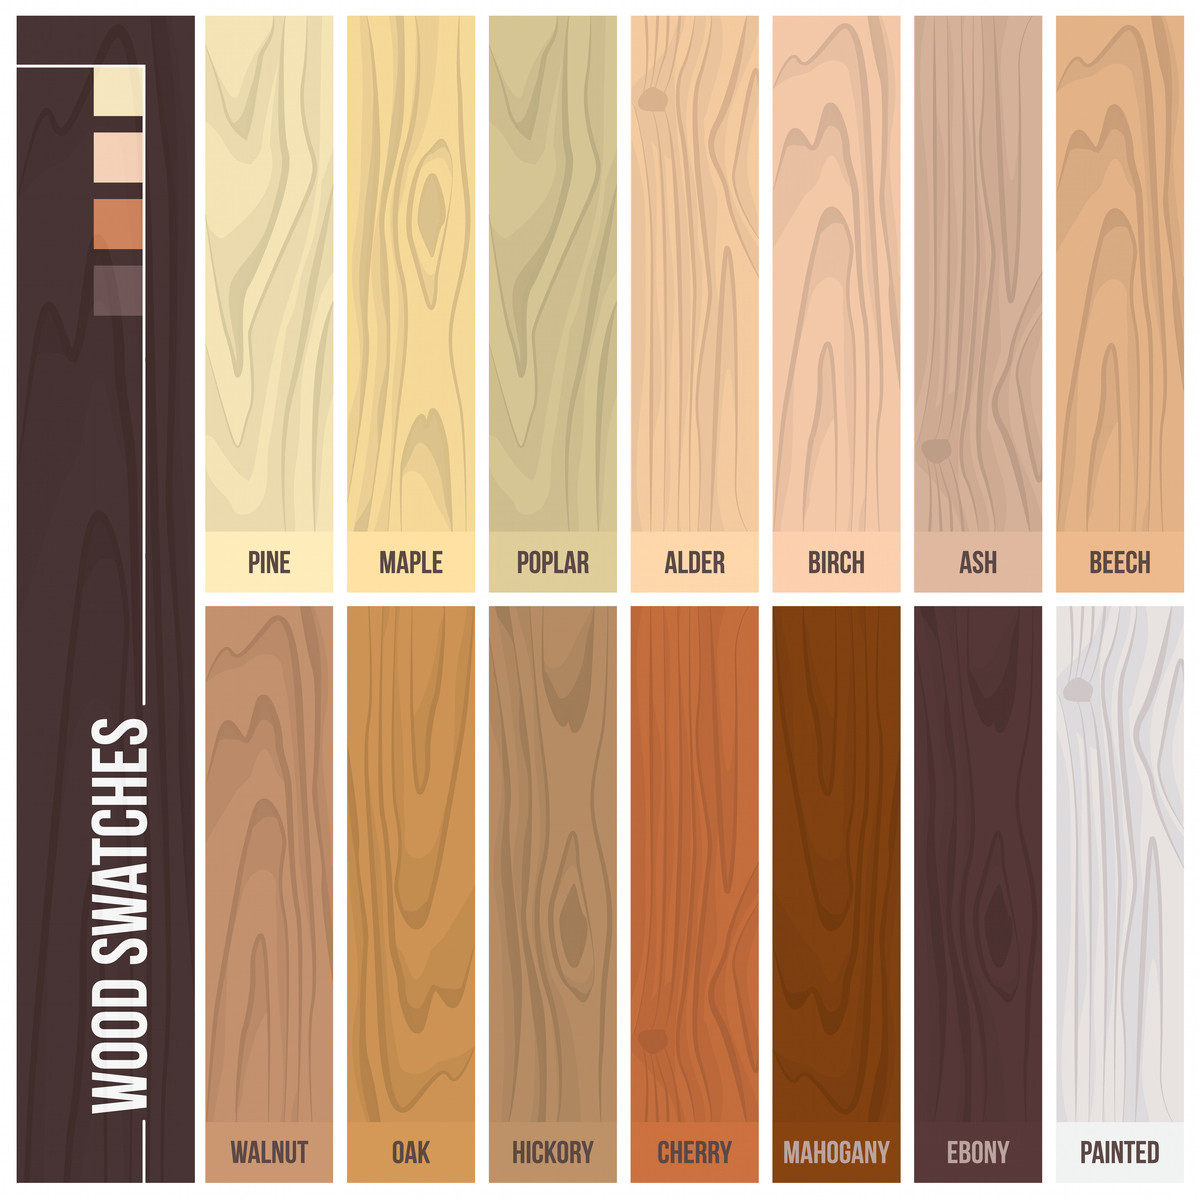 types of wood used for hardwood flooring of 12 types of hardwood flooring species styles edging dimensions with regard to types of hardwood flooring illustrated guide